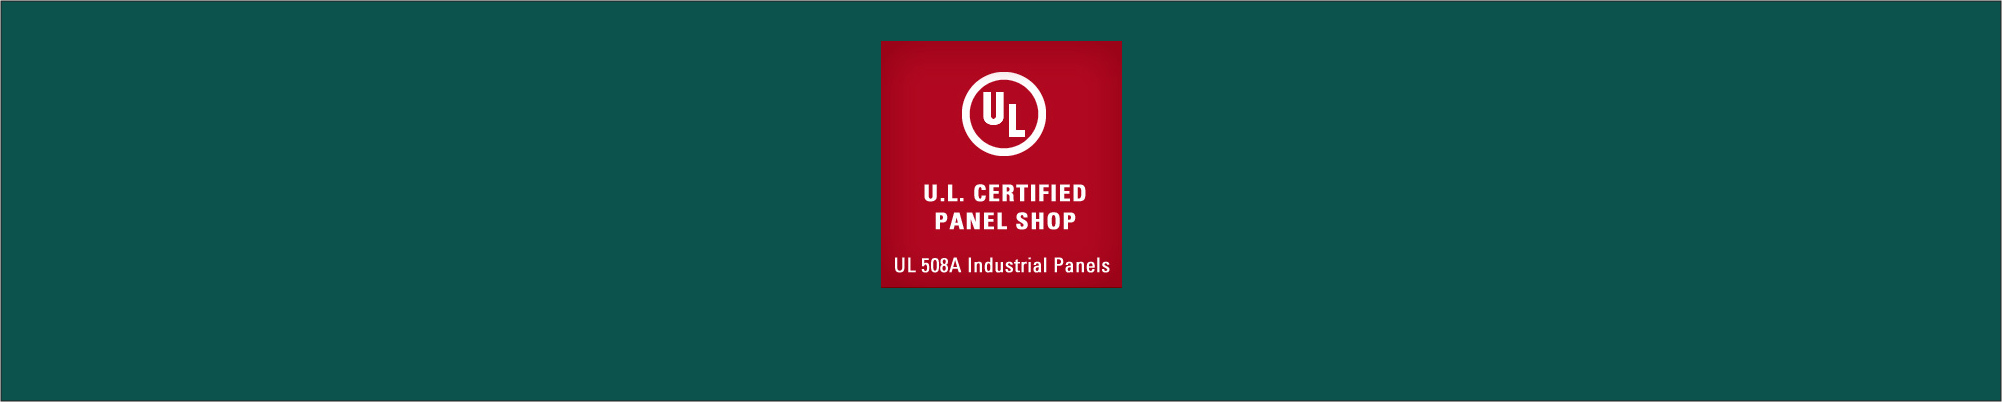 Header Image IPS – U.L. 508A Certified Panel 3